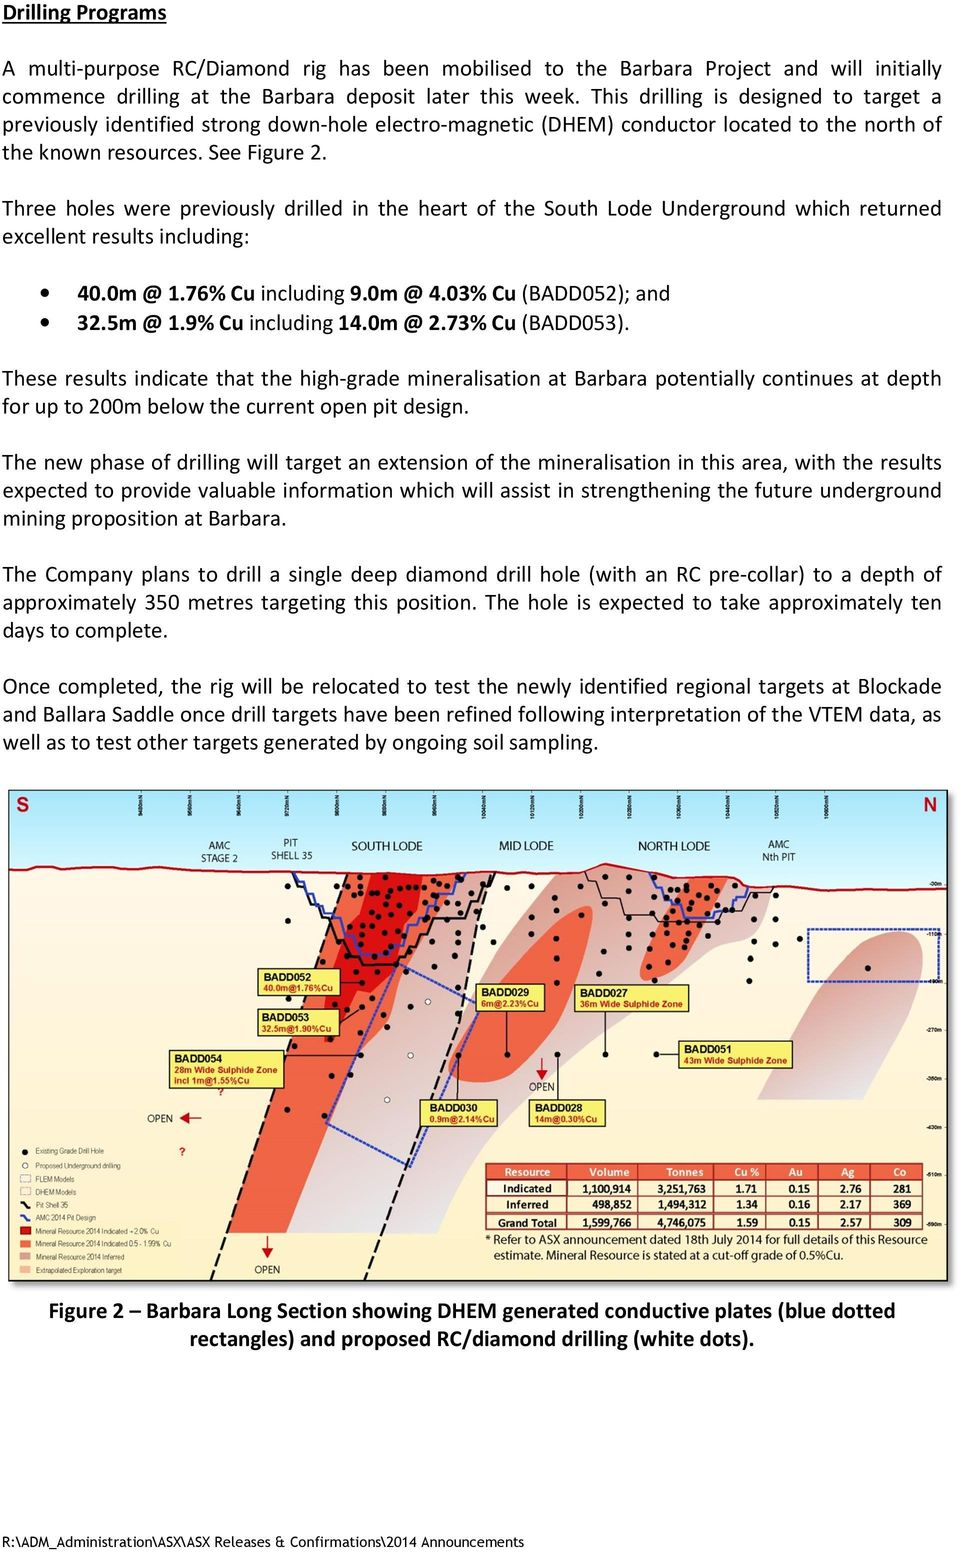 Three holes were previously drilled in the heart of the South Lode Underground which returned excellent results including: 40.0m @ 1.76% Cu including 9.0m @ 4.03% Cu (BADD052); and 32.5m @ 1.